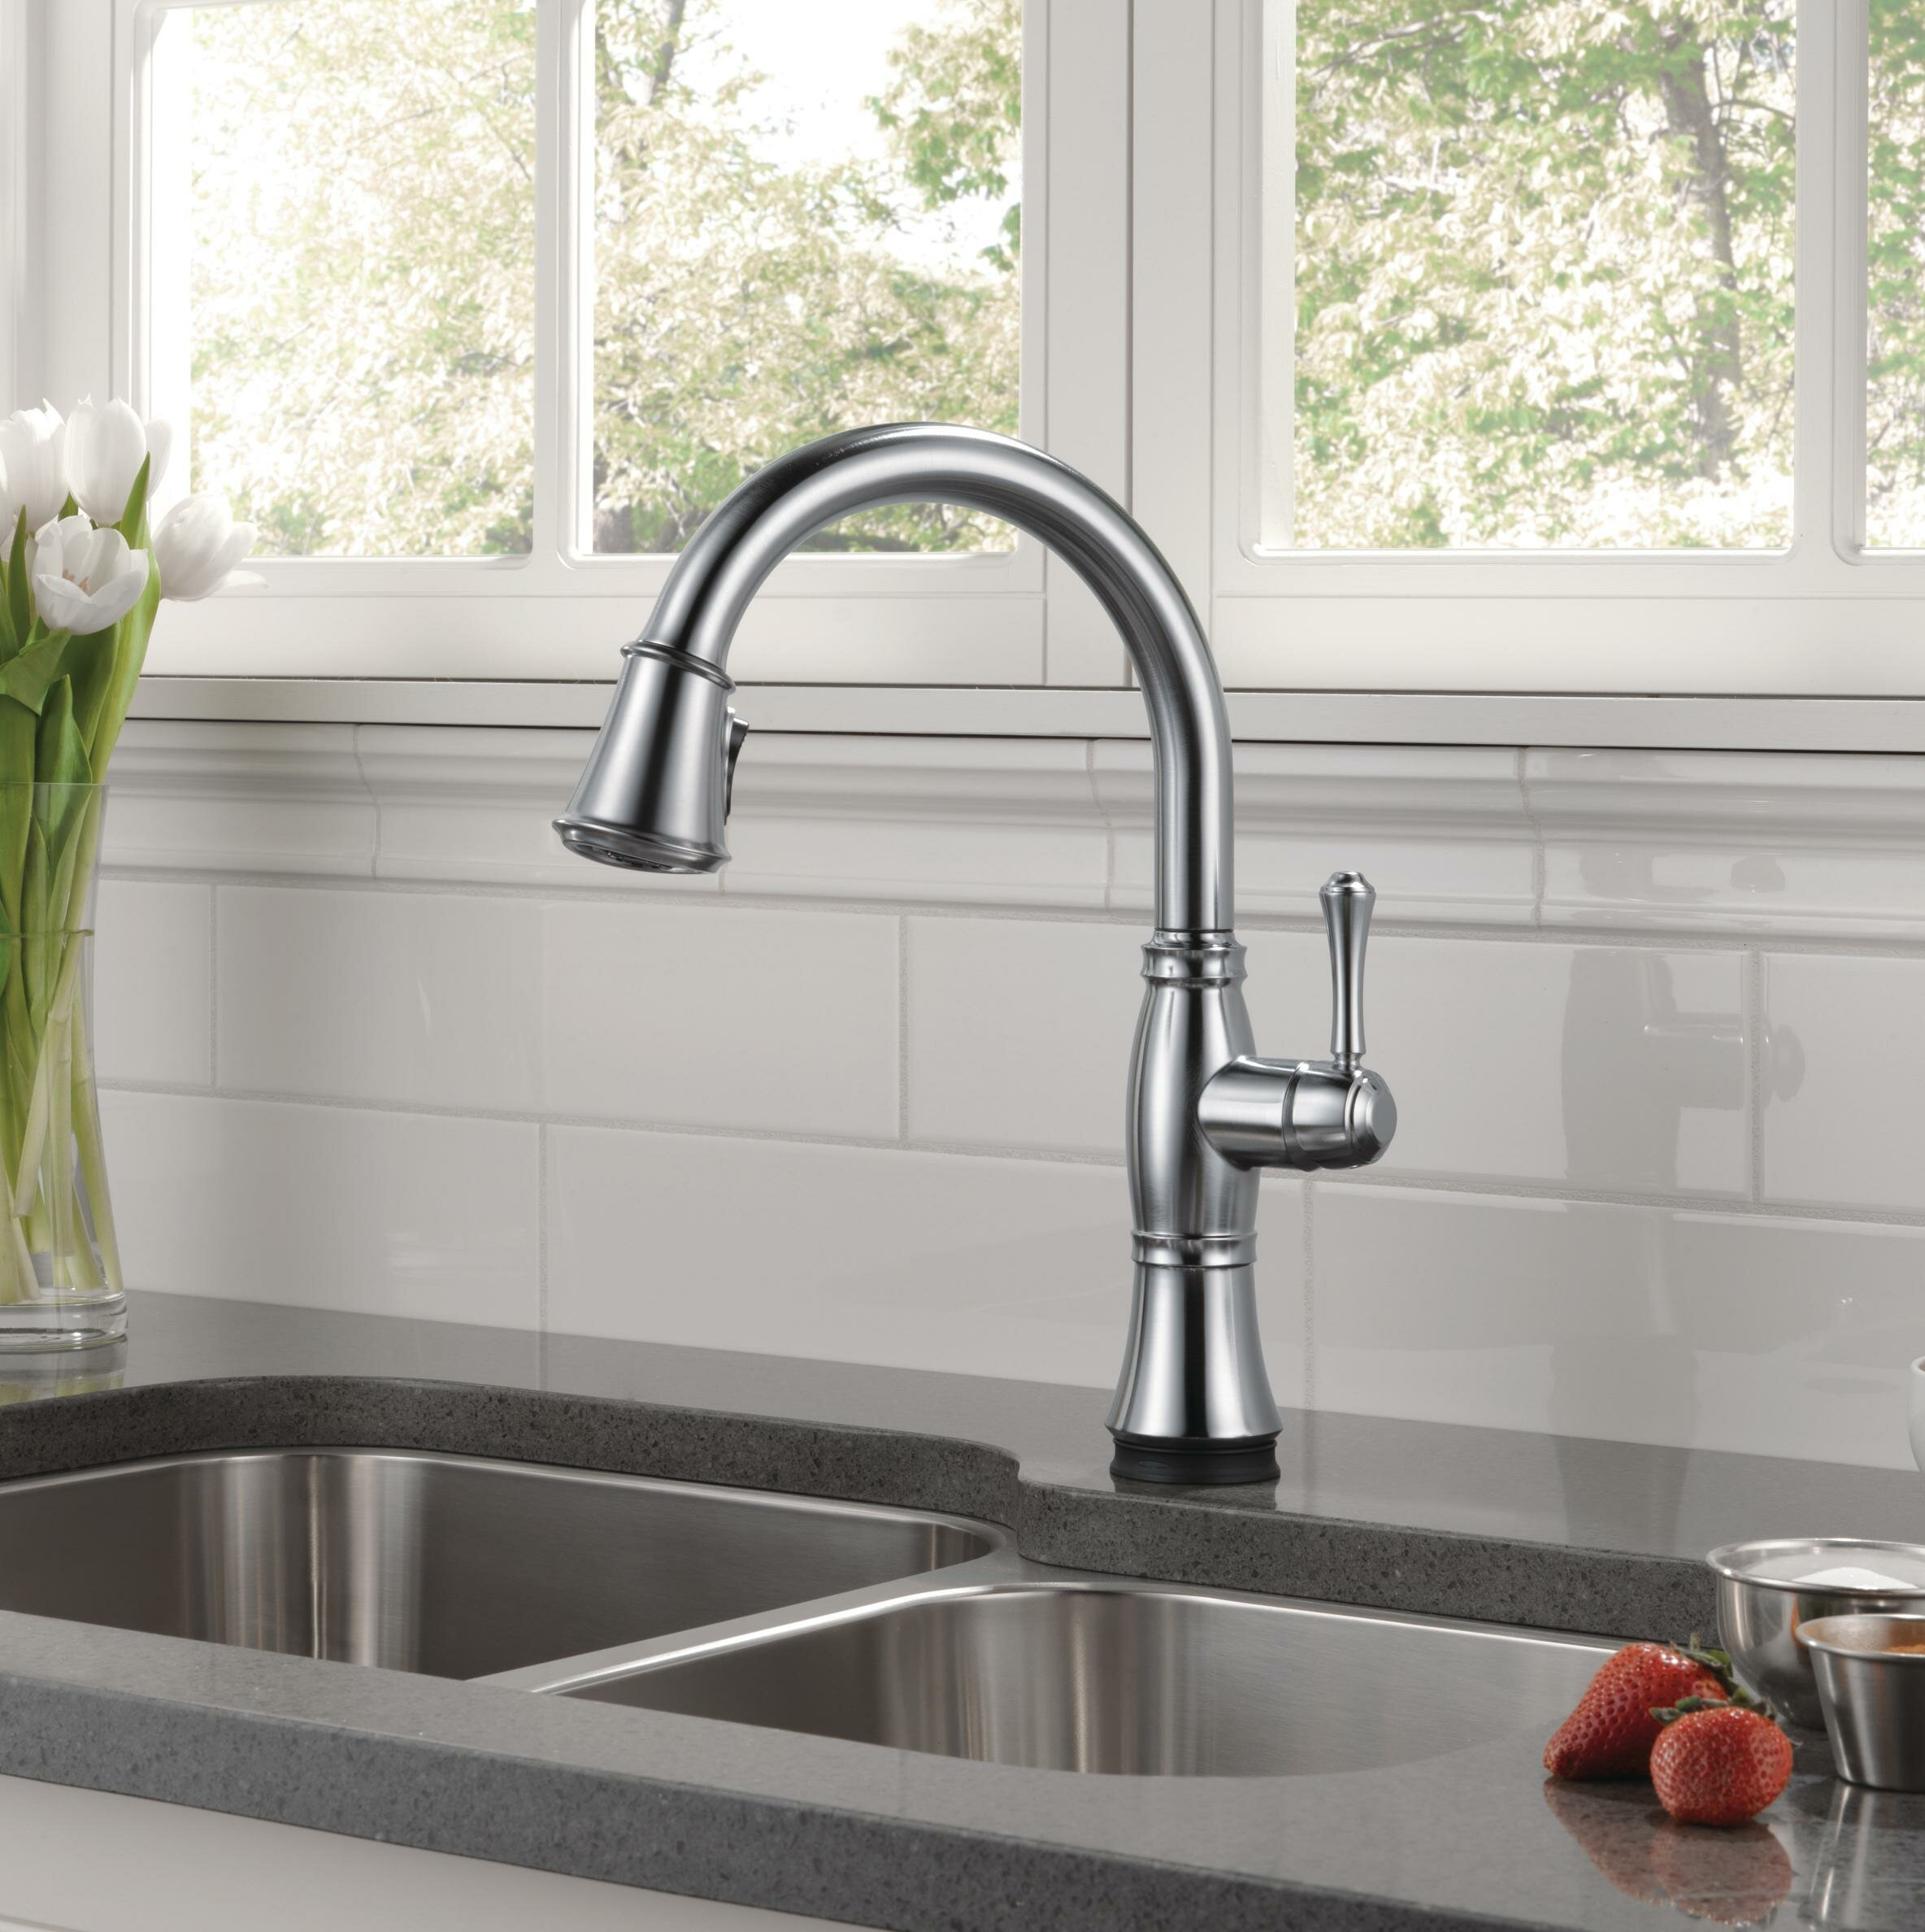 Delta Cassidy Touch20 Kitchen Faucet | Wow Blog